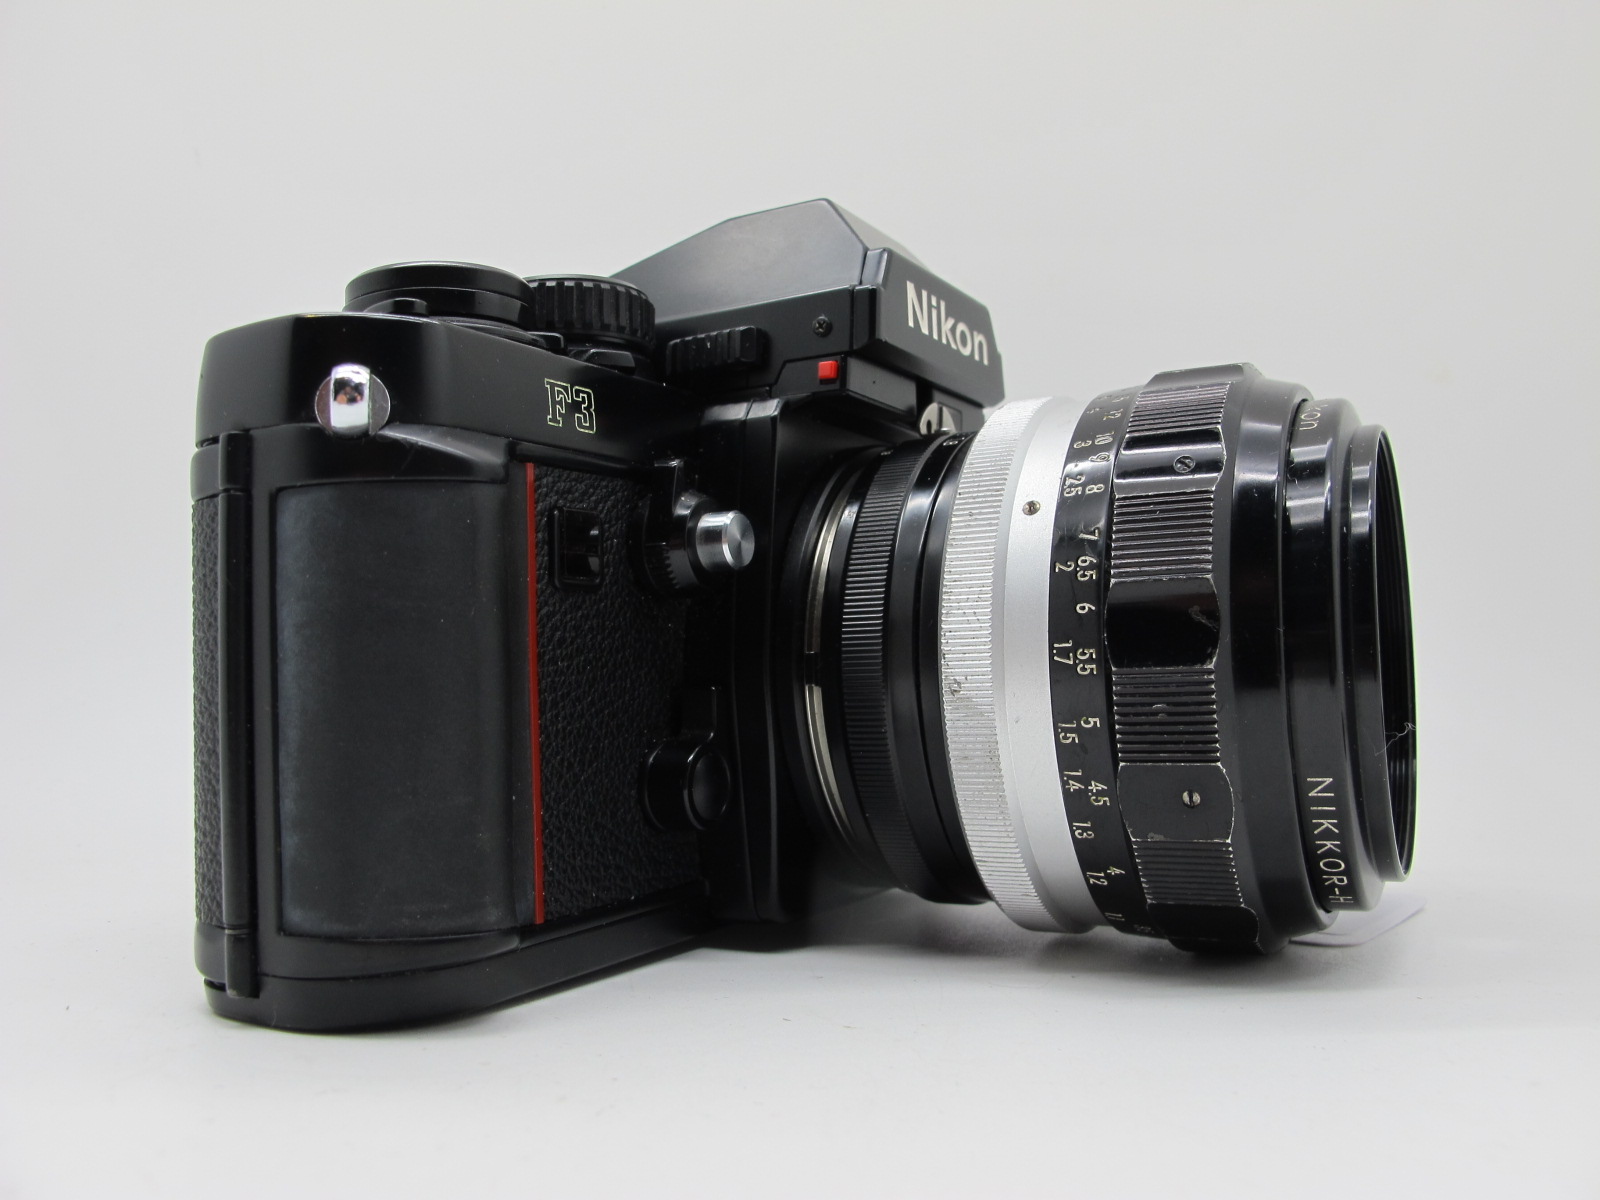 Nikon F3, with Nikkor-H Auto 1-18 f=85mm lens. - Image 4 of 9